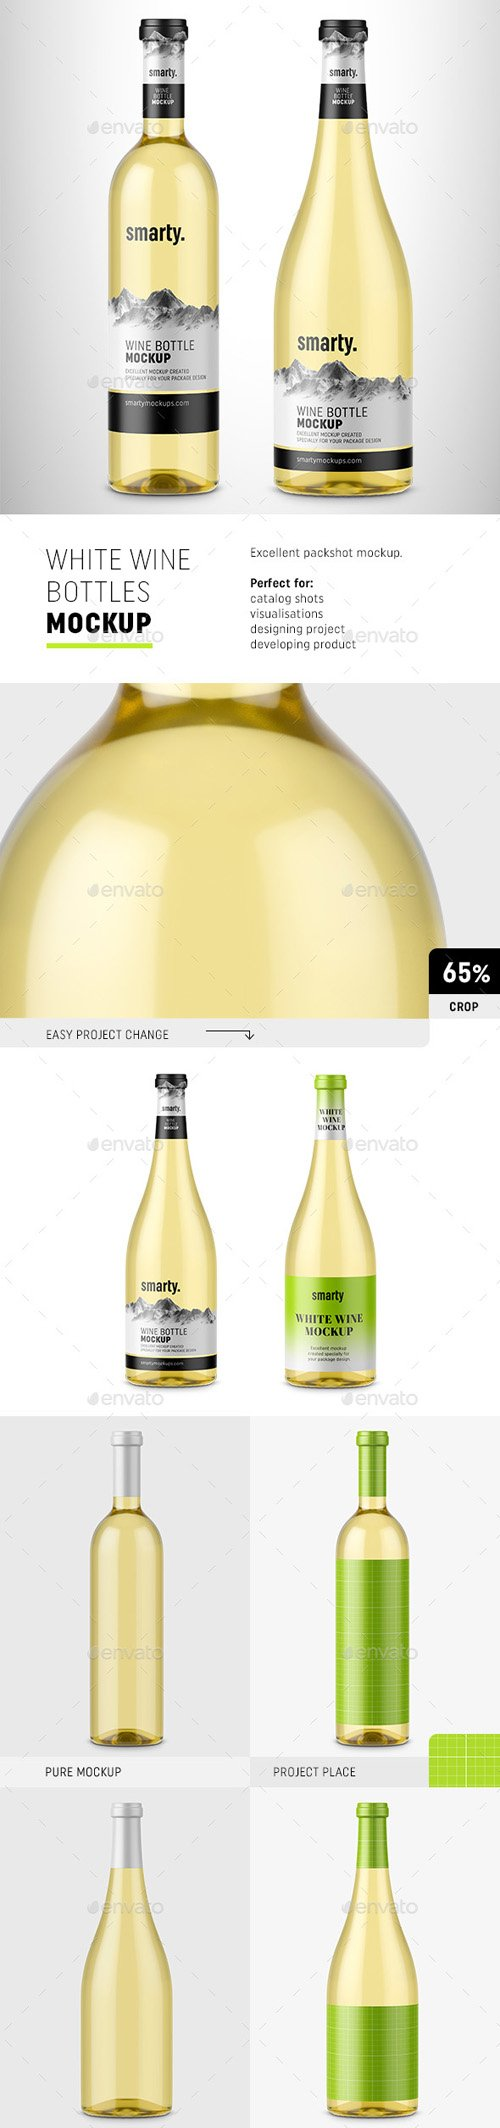 White Wine Bottles Mockup 20263664